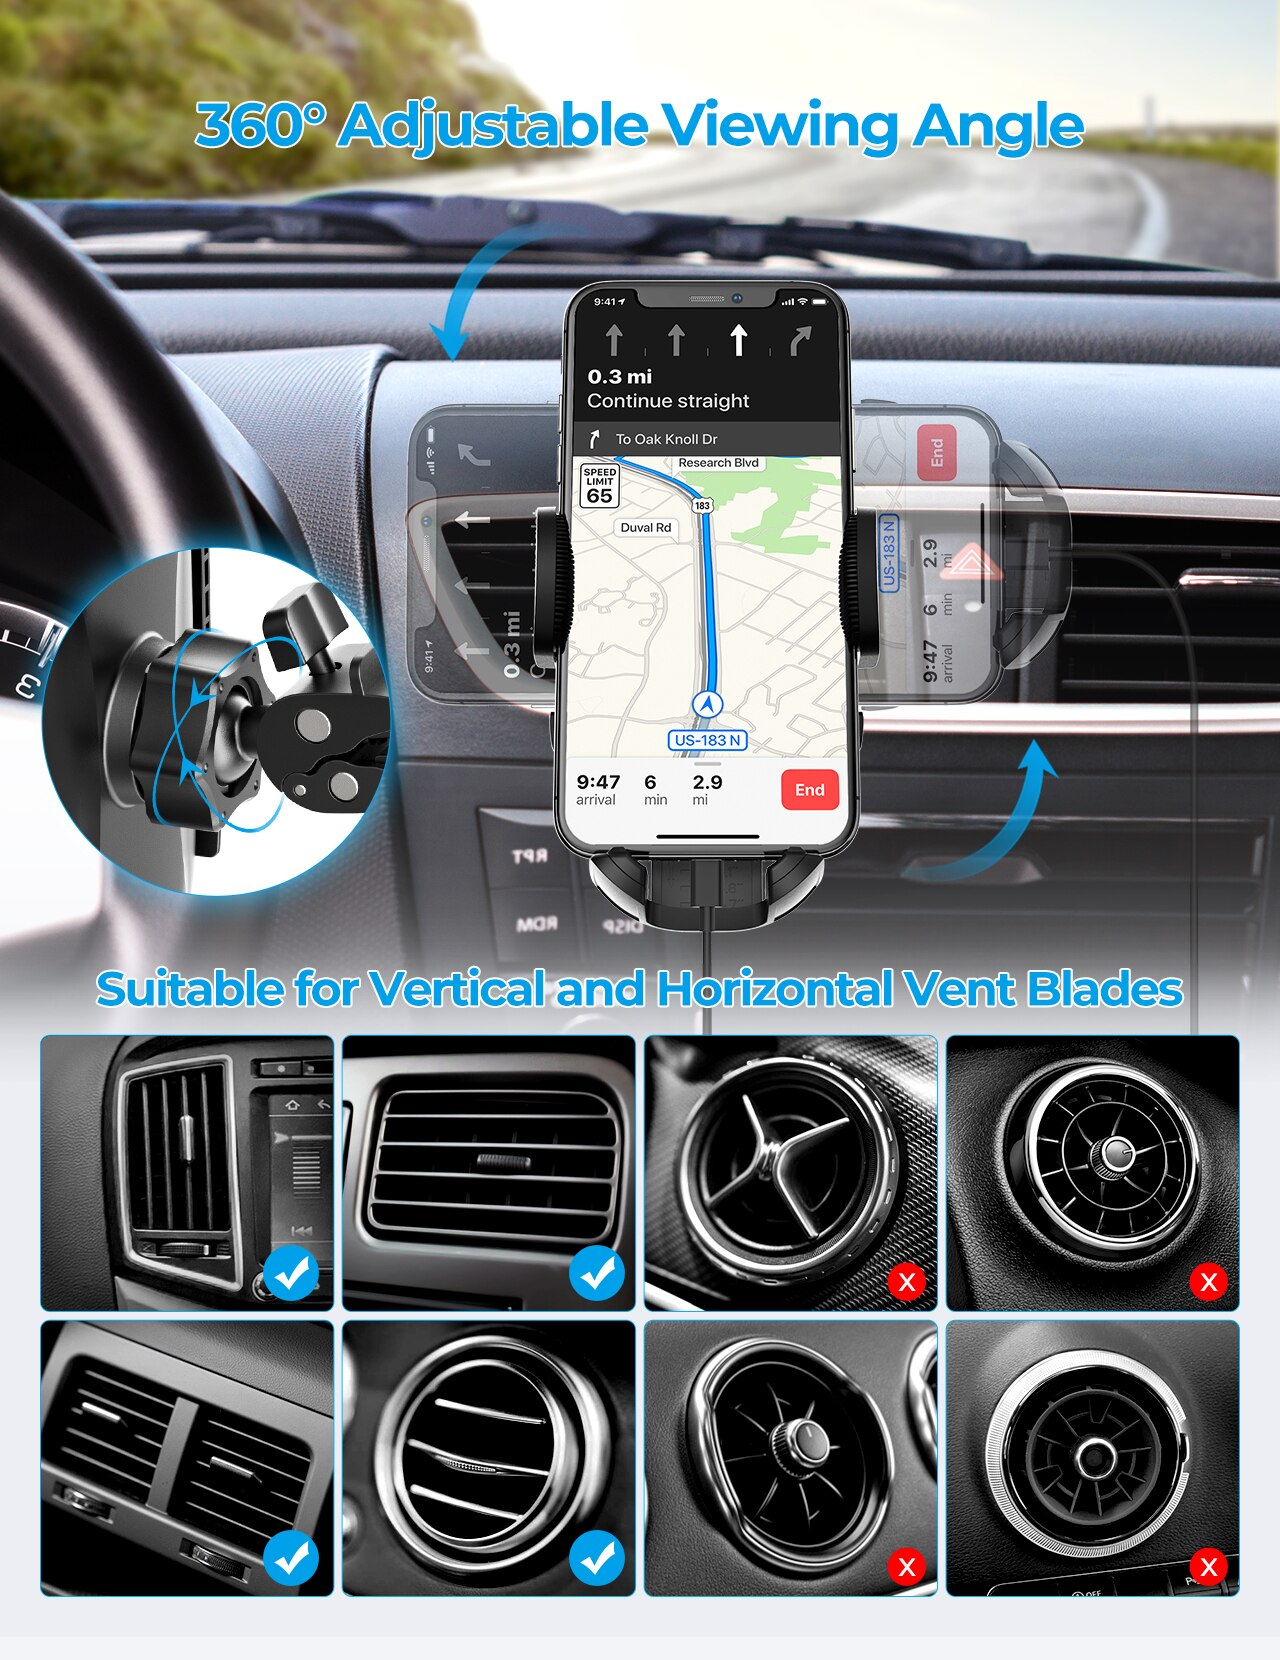 H9fe3d98846d54415b0cd9761dddf8a5cc - MPOW CA163 Universal Air Vent Car Phone Mount with Stable Clip and Dual Release Button Compatible with iPhone 12 11 Pro and More